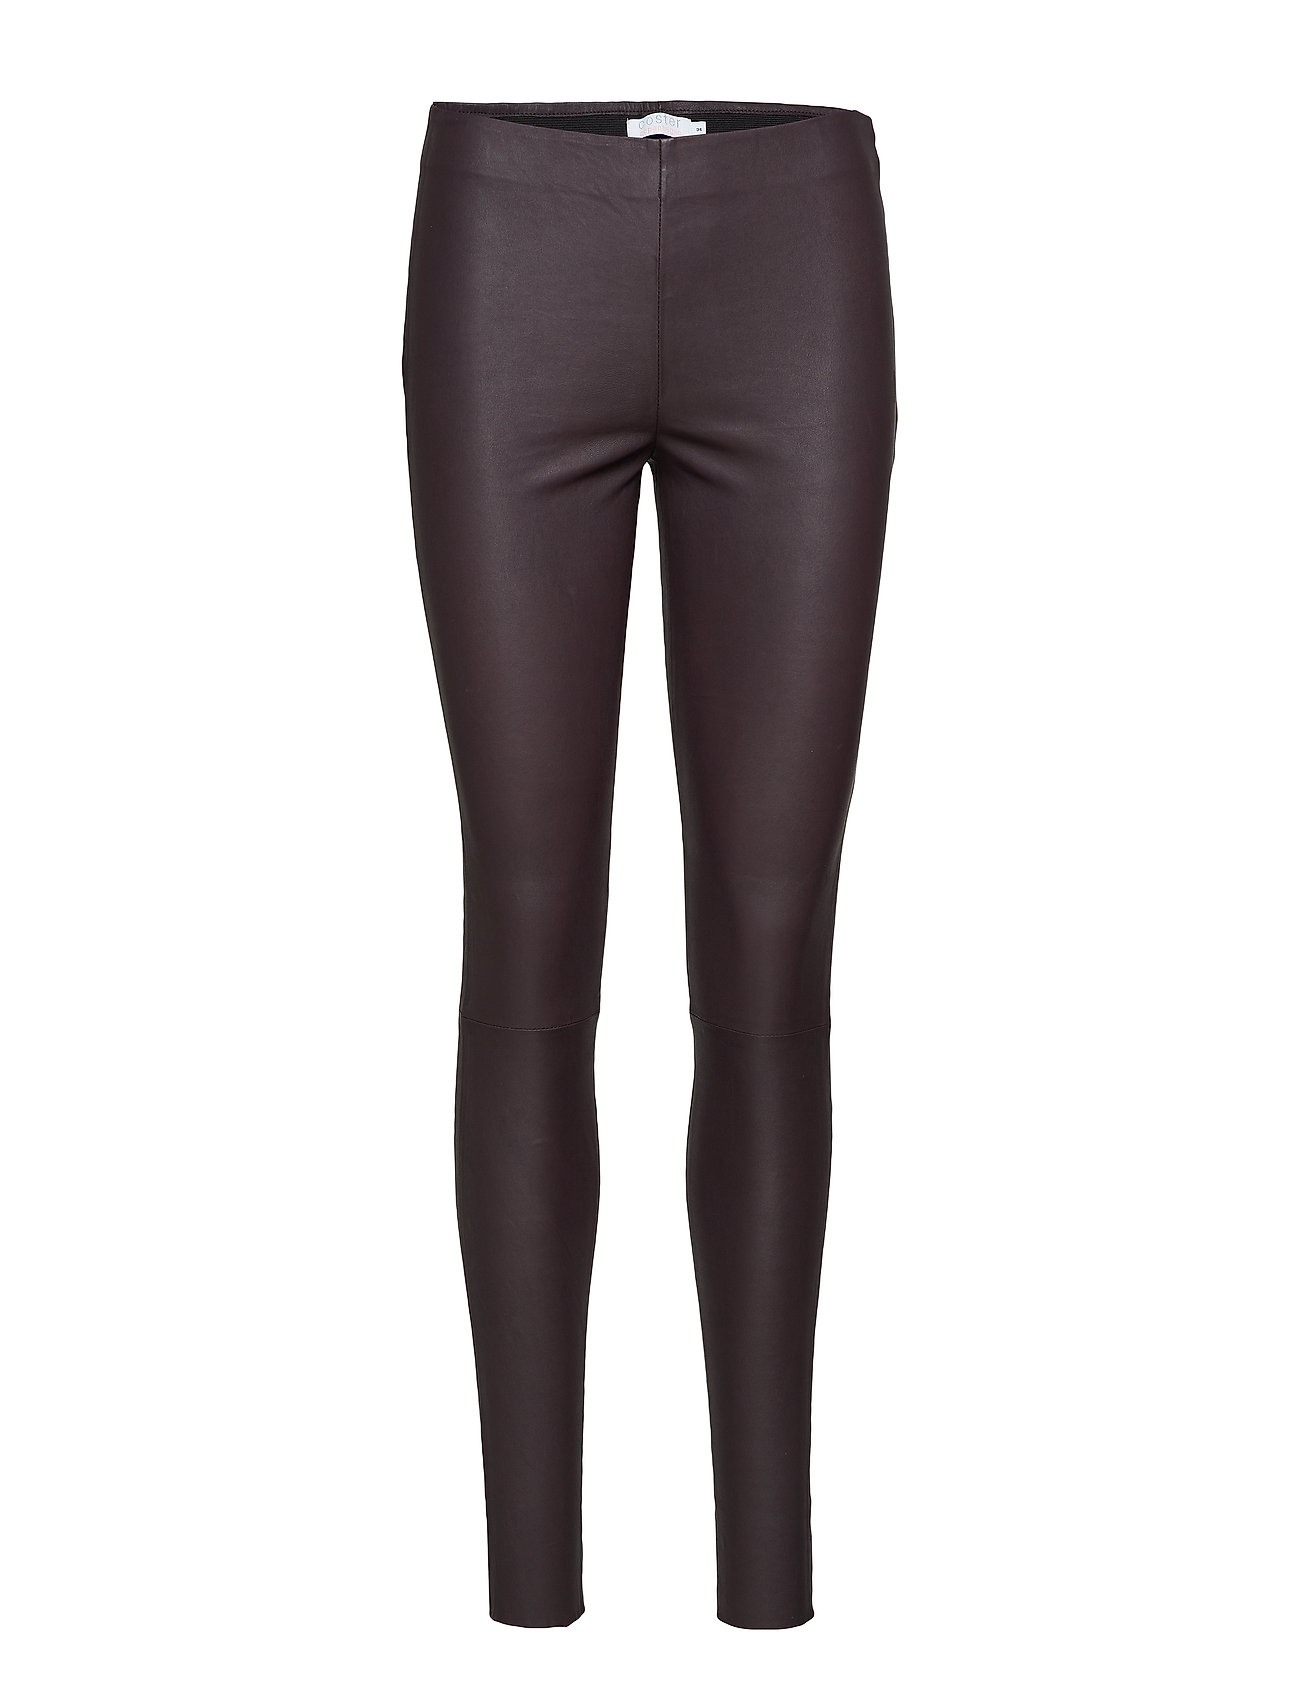 Image of Leather Stretch Leggings - Mynte Leather Leggings/Bukser Brun COSTER COPENHAGEN (3101134821)